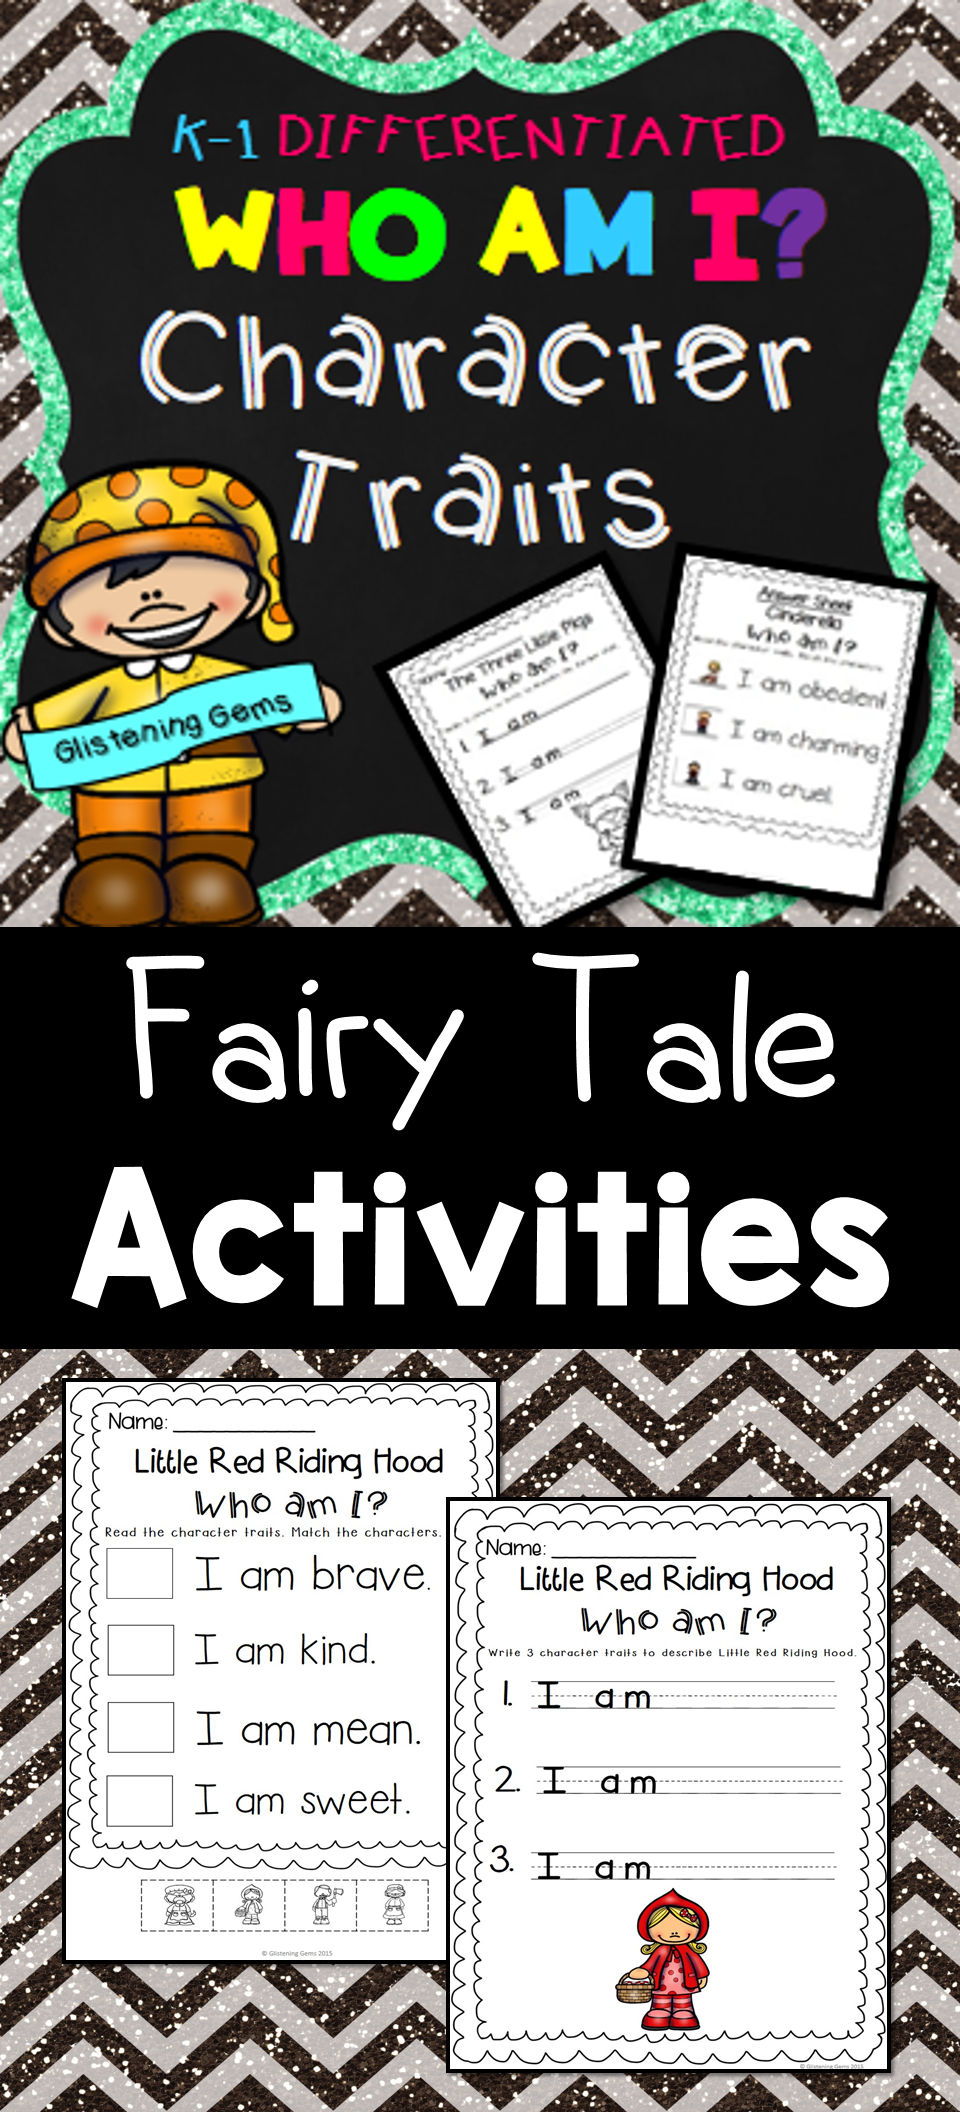 Engage Your Students With These Fun Fairy Tale Activities For Kindergarten And First Grade Differentiated Fa Fairy Tale Activities Fairy Tales Character Trait [ 2112 x 960 Pixel ]